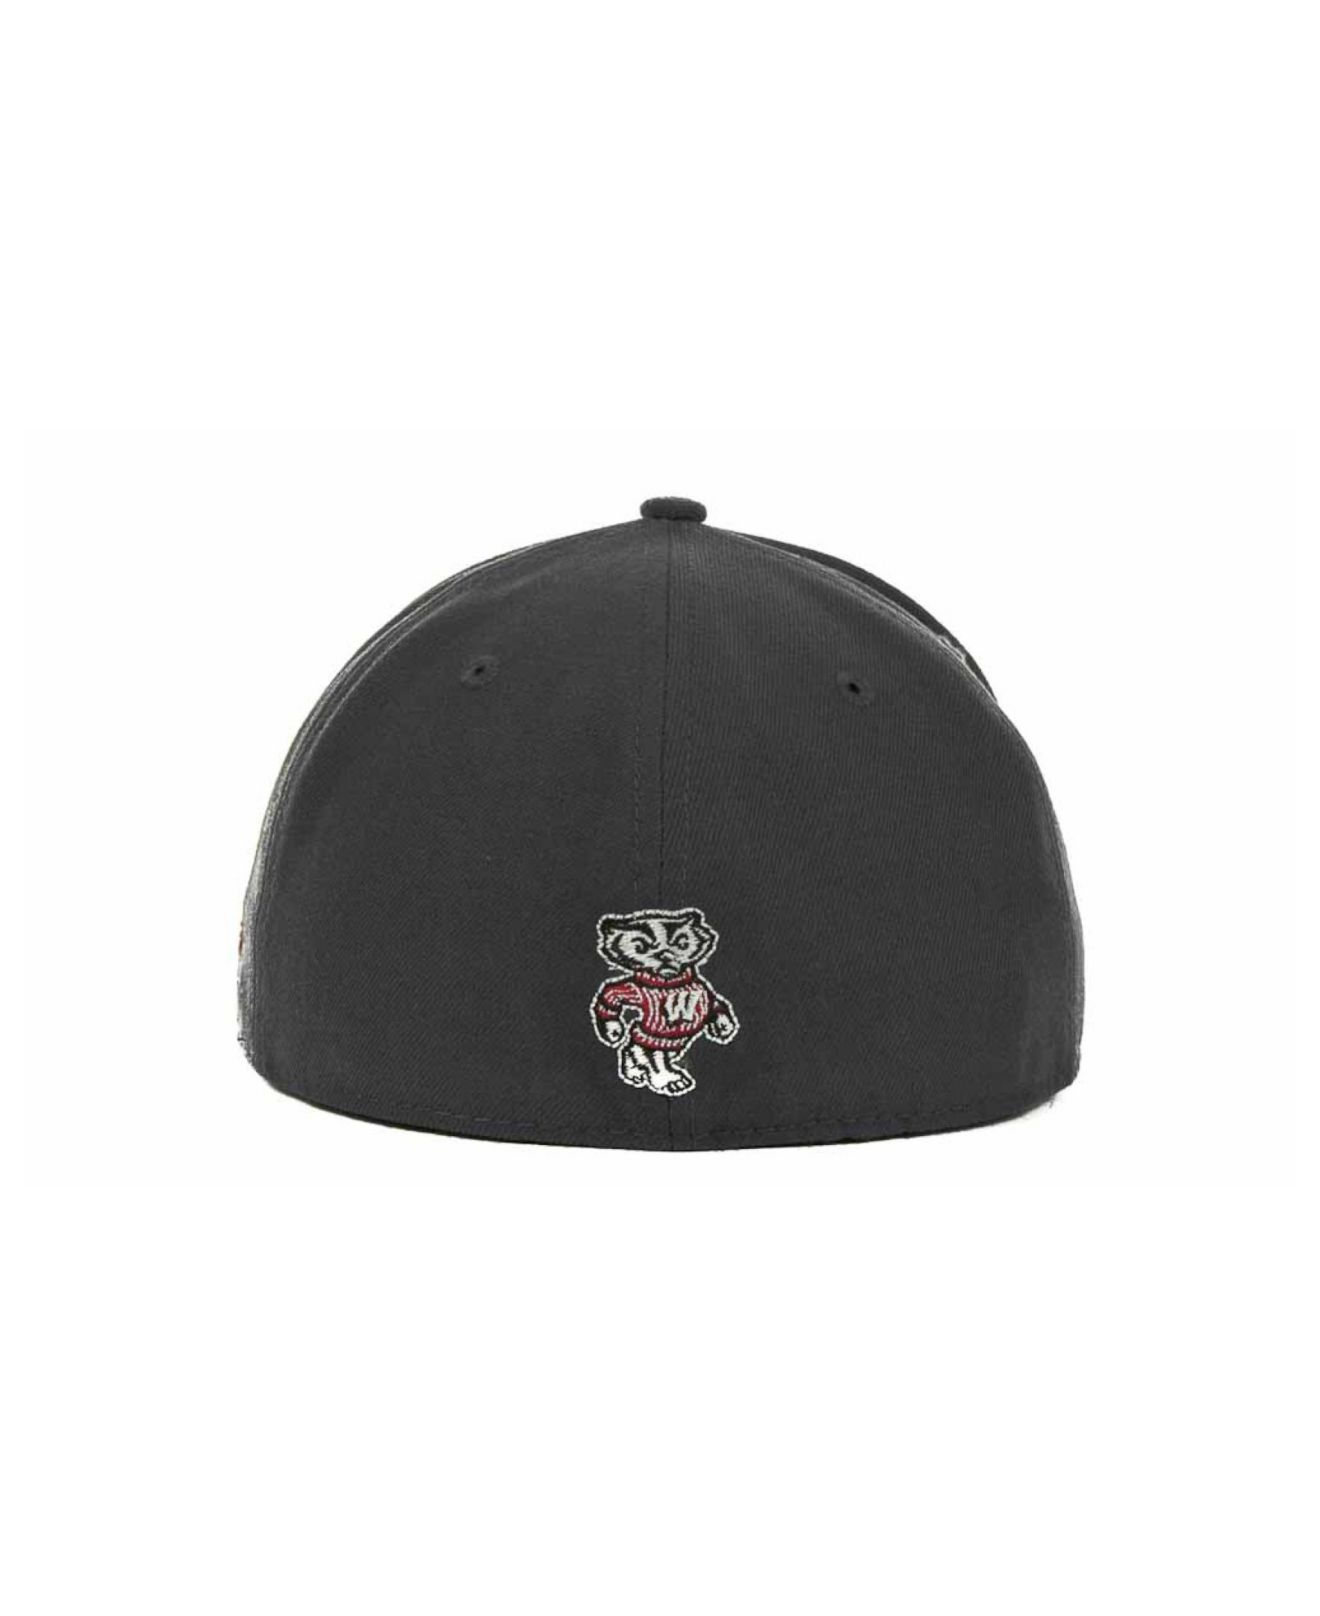 on sale e62f6 1cf54 KTZ Wisconsin Badgers 2-tone Graphite And Team Color 59fifty Cap in ...